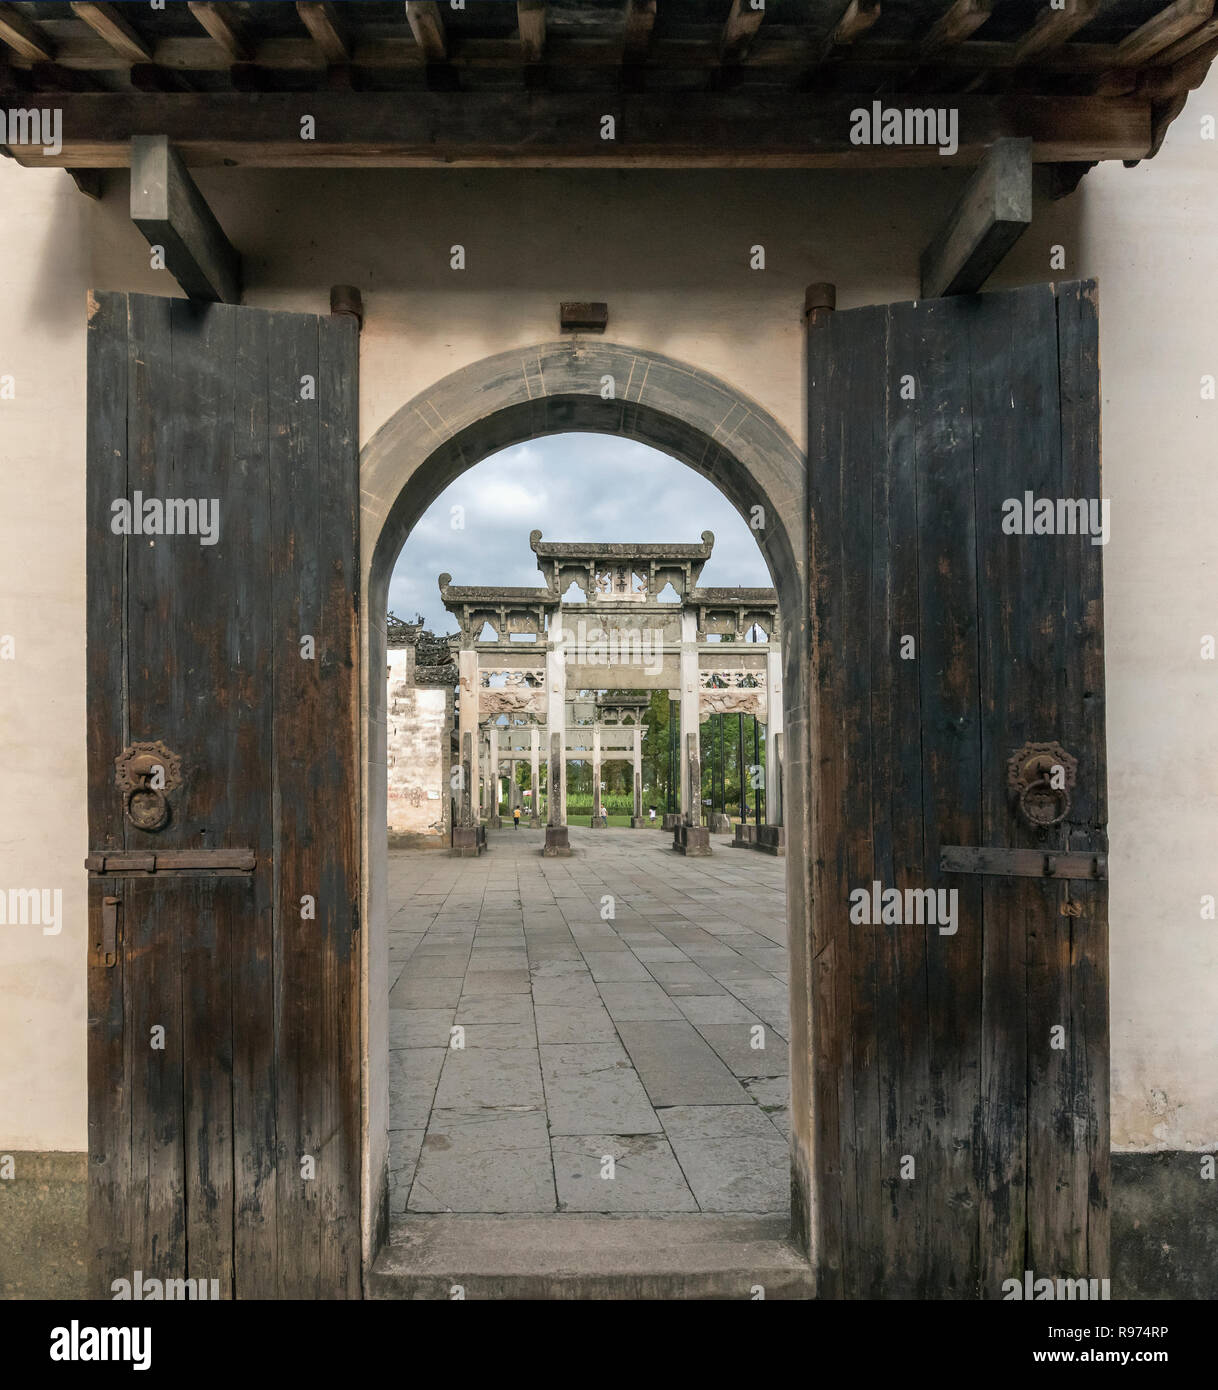 Looking from Qing Yi Tang towards Bao CanXiao Archway for Filial Piety, Tangyue, China - Stock Image